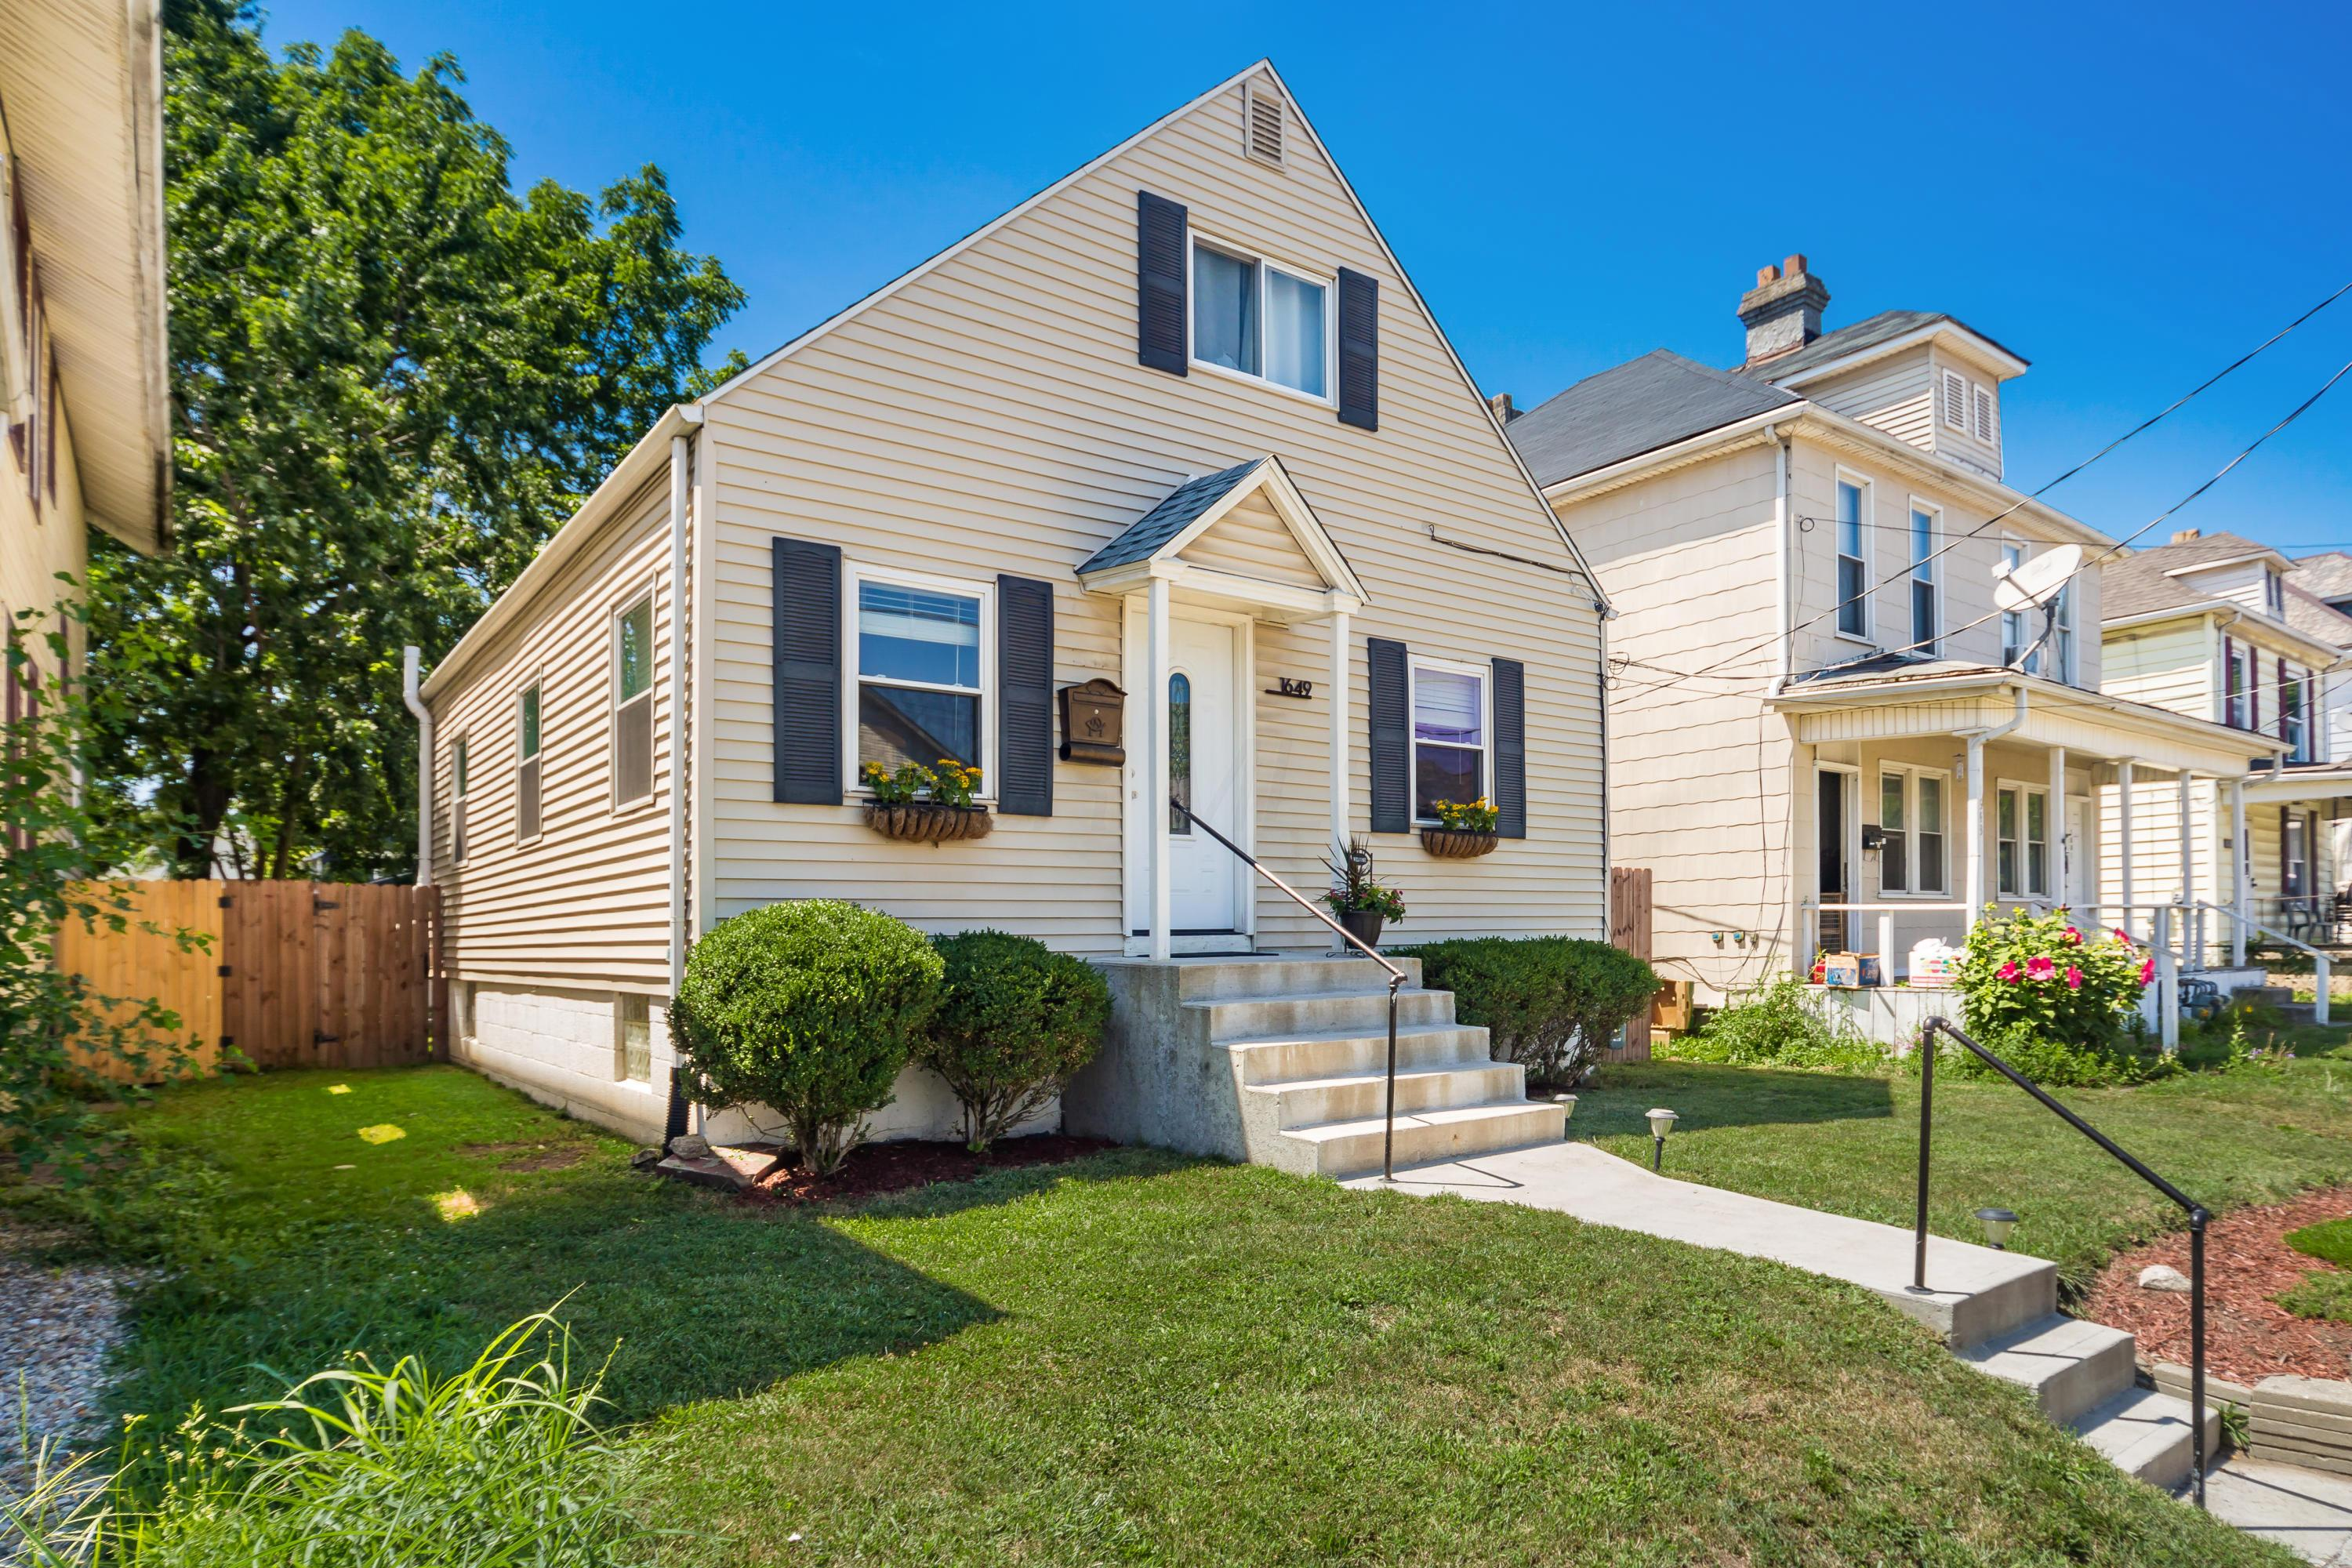 1649 4th Street, Columbus, Ohio 43207, 3 Bedrooms Bedrooms, ,1 BathroomBathrooms,Residential,For Sale,4th,220025623